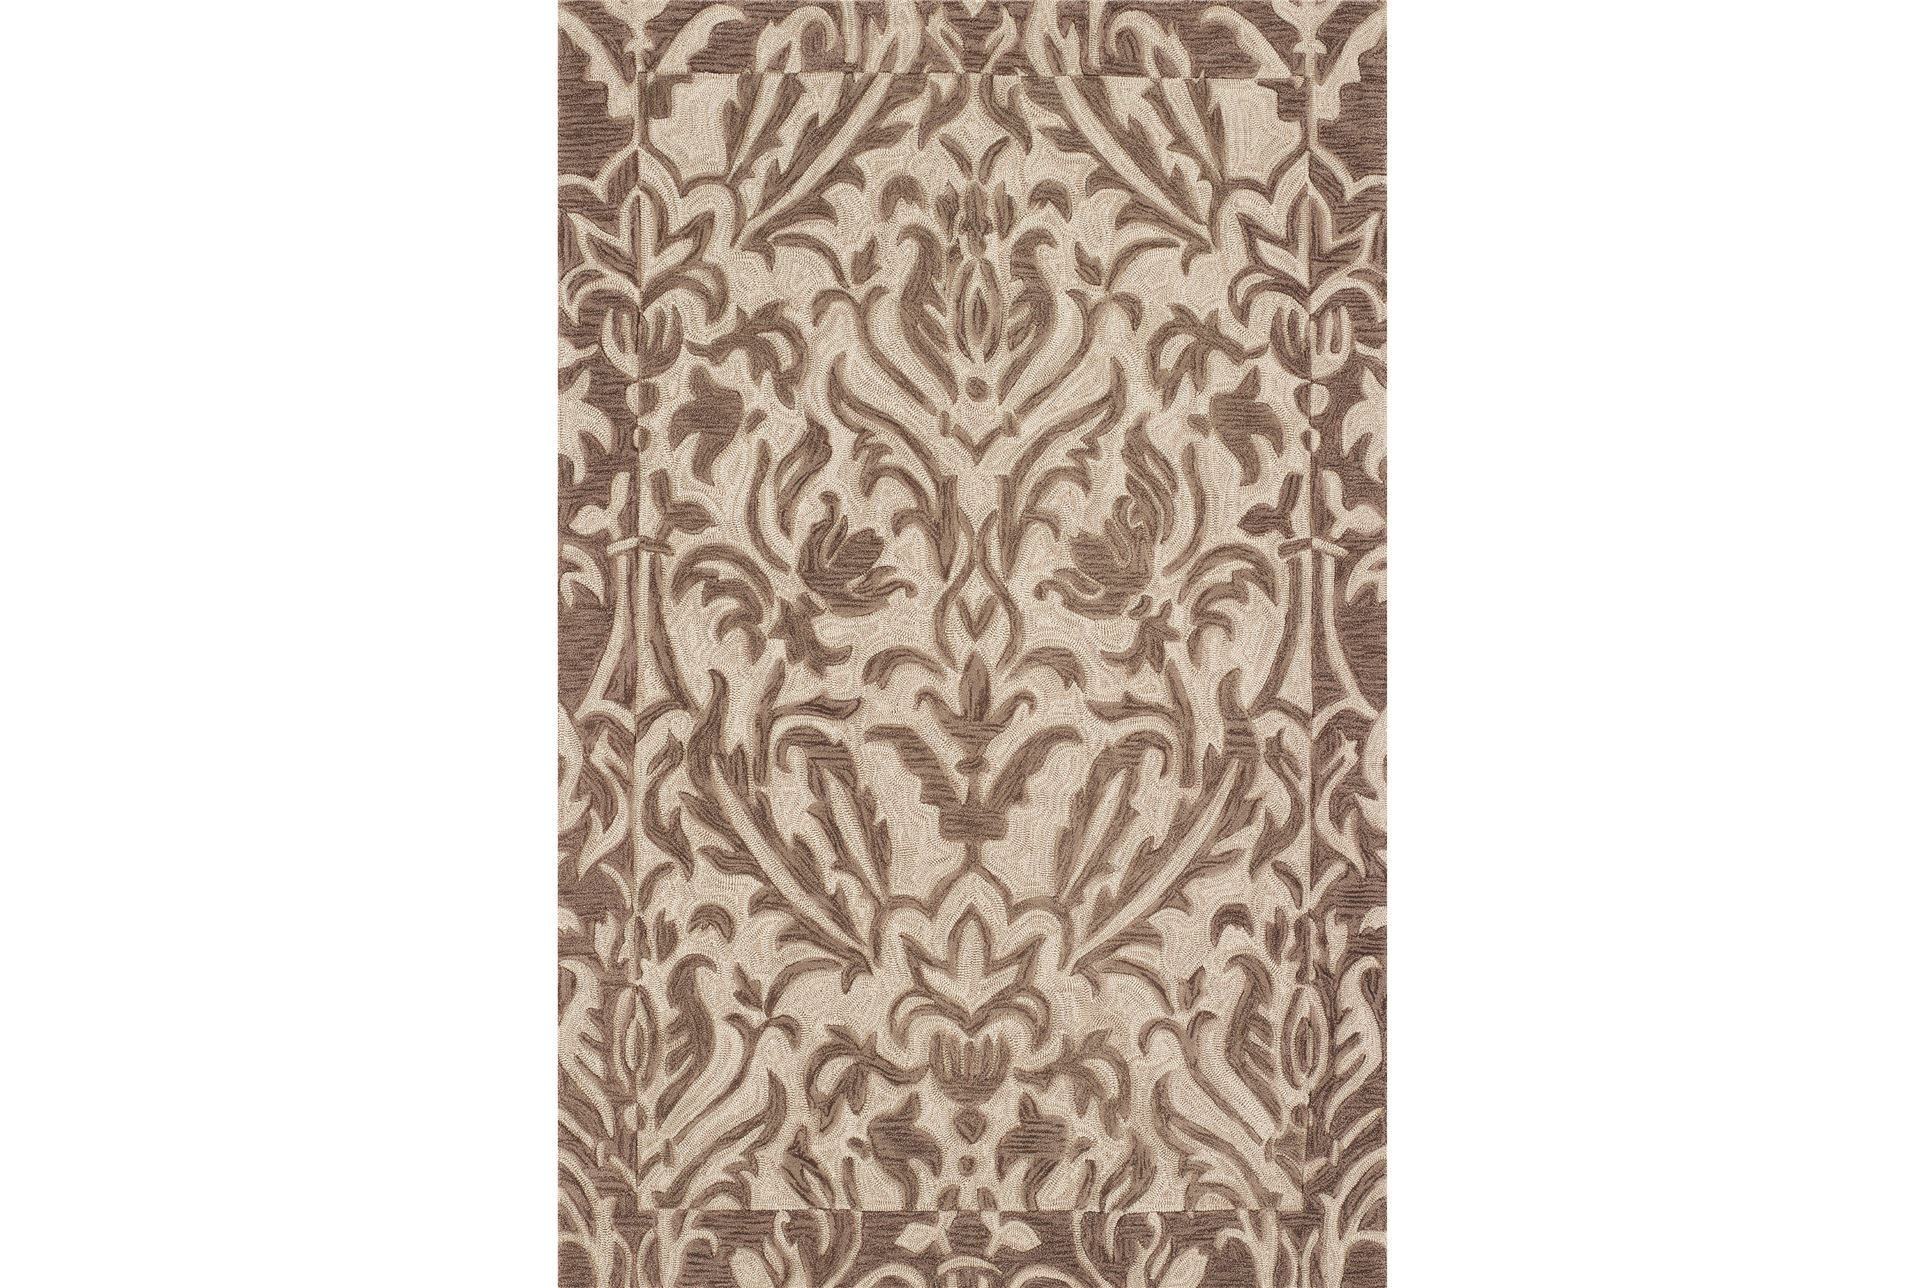 60x93 rug alto khaki living spaces for Living spaces rugs